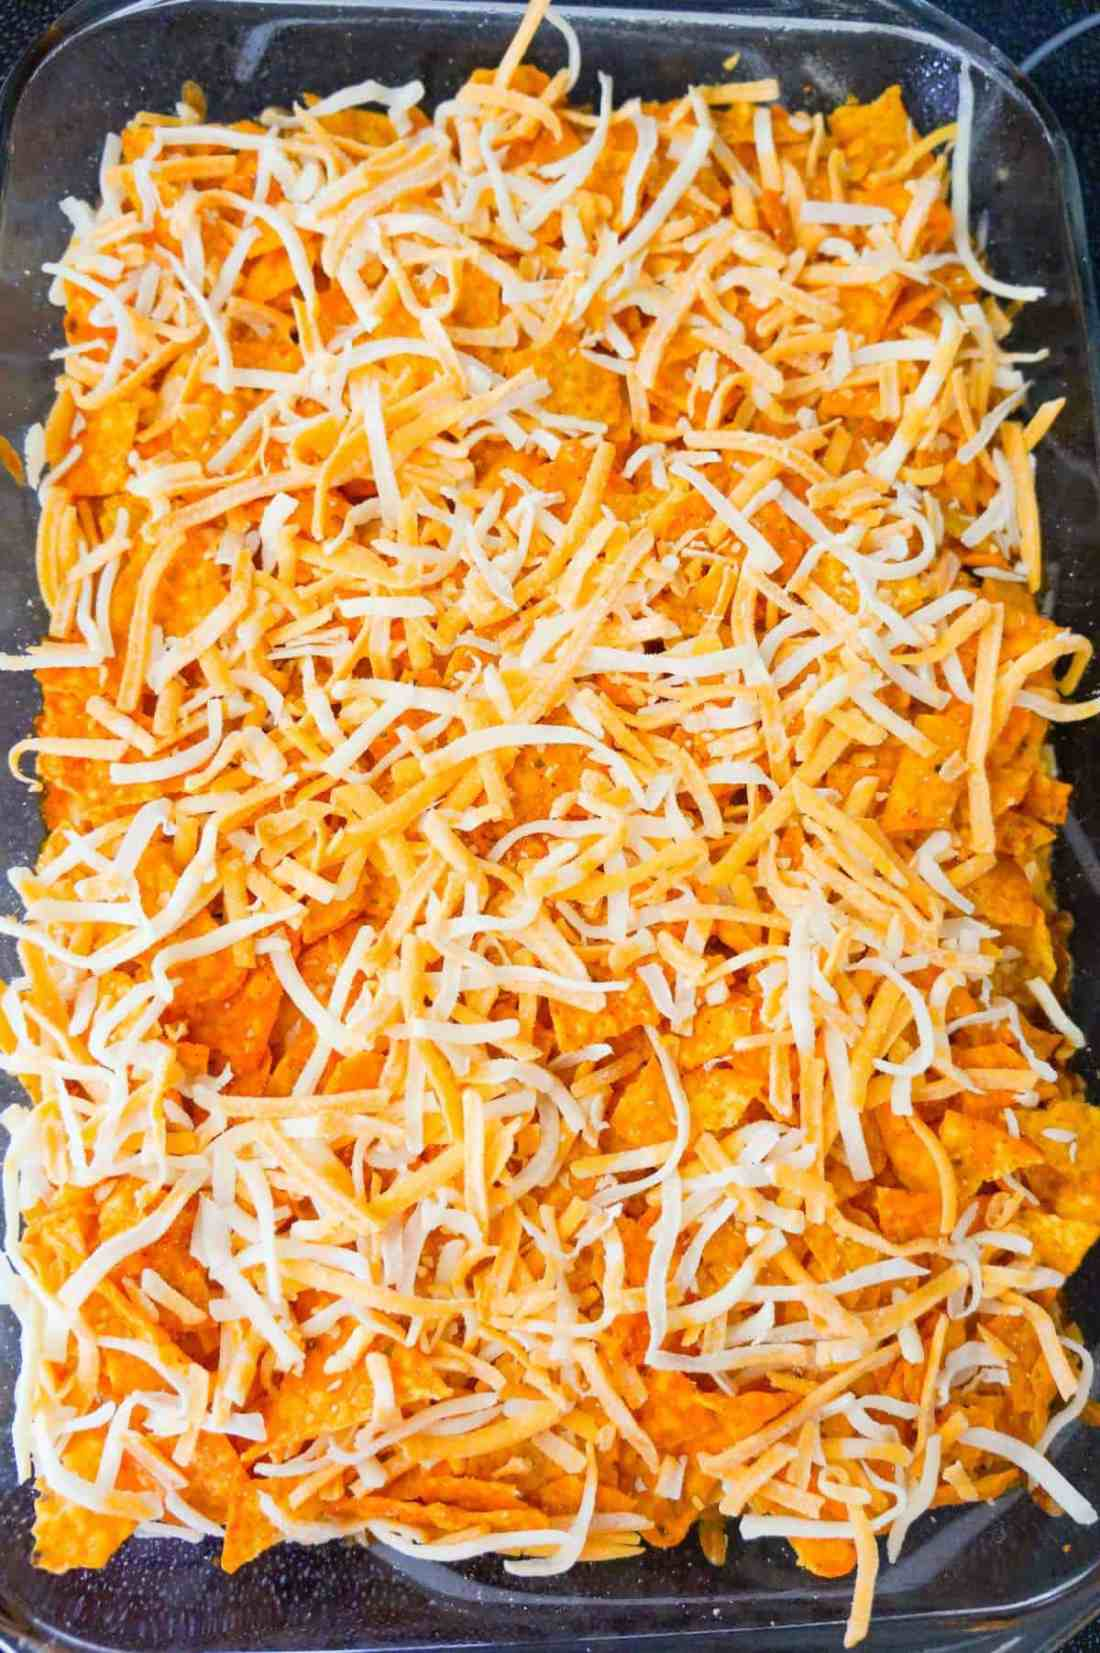 shredded cheese on top of Doritos chili pie